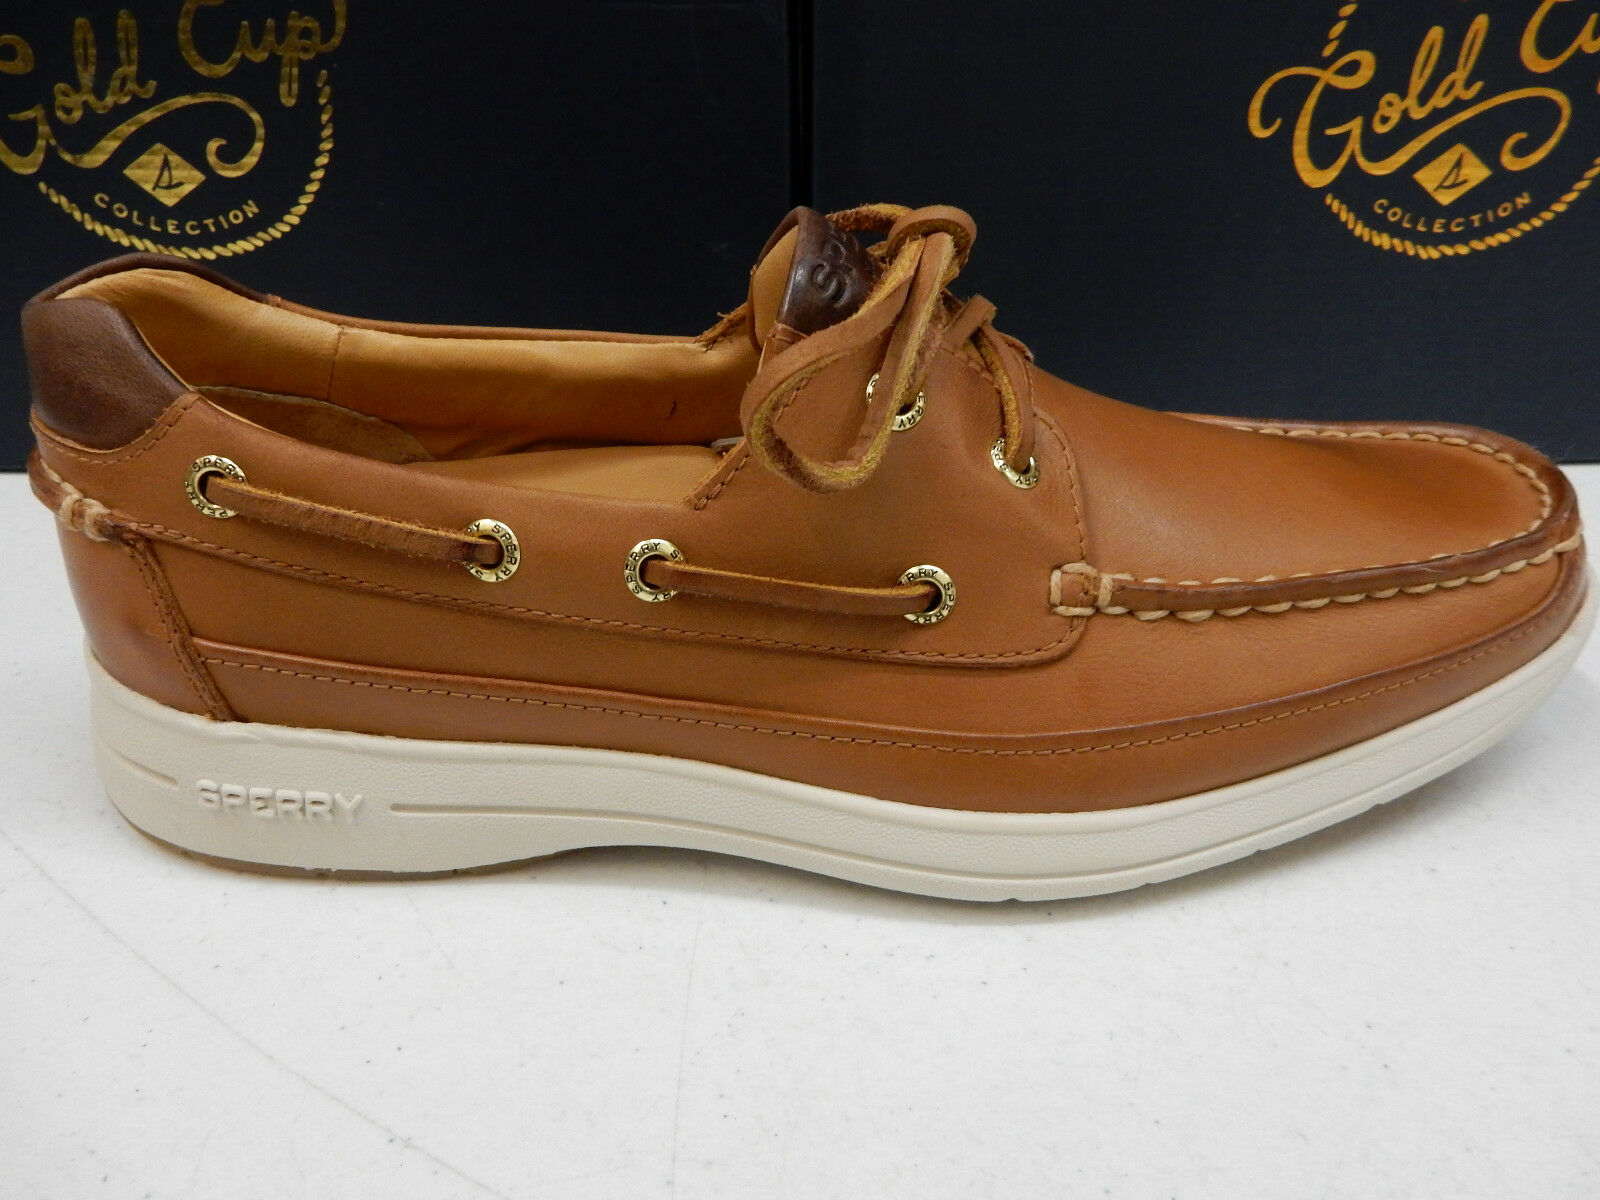 SPERRY GOLD TOP SIDER Uomo GOLD SPERRY CUP ULTRA BOAT 2-EYE ASV TAN SIZE 9.5 6f6aad